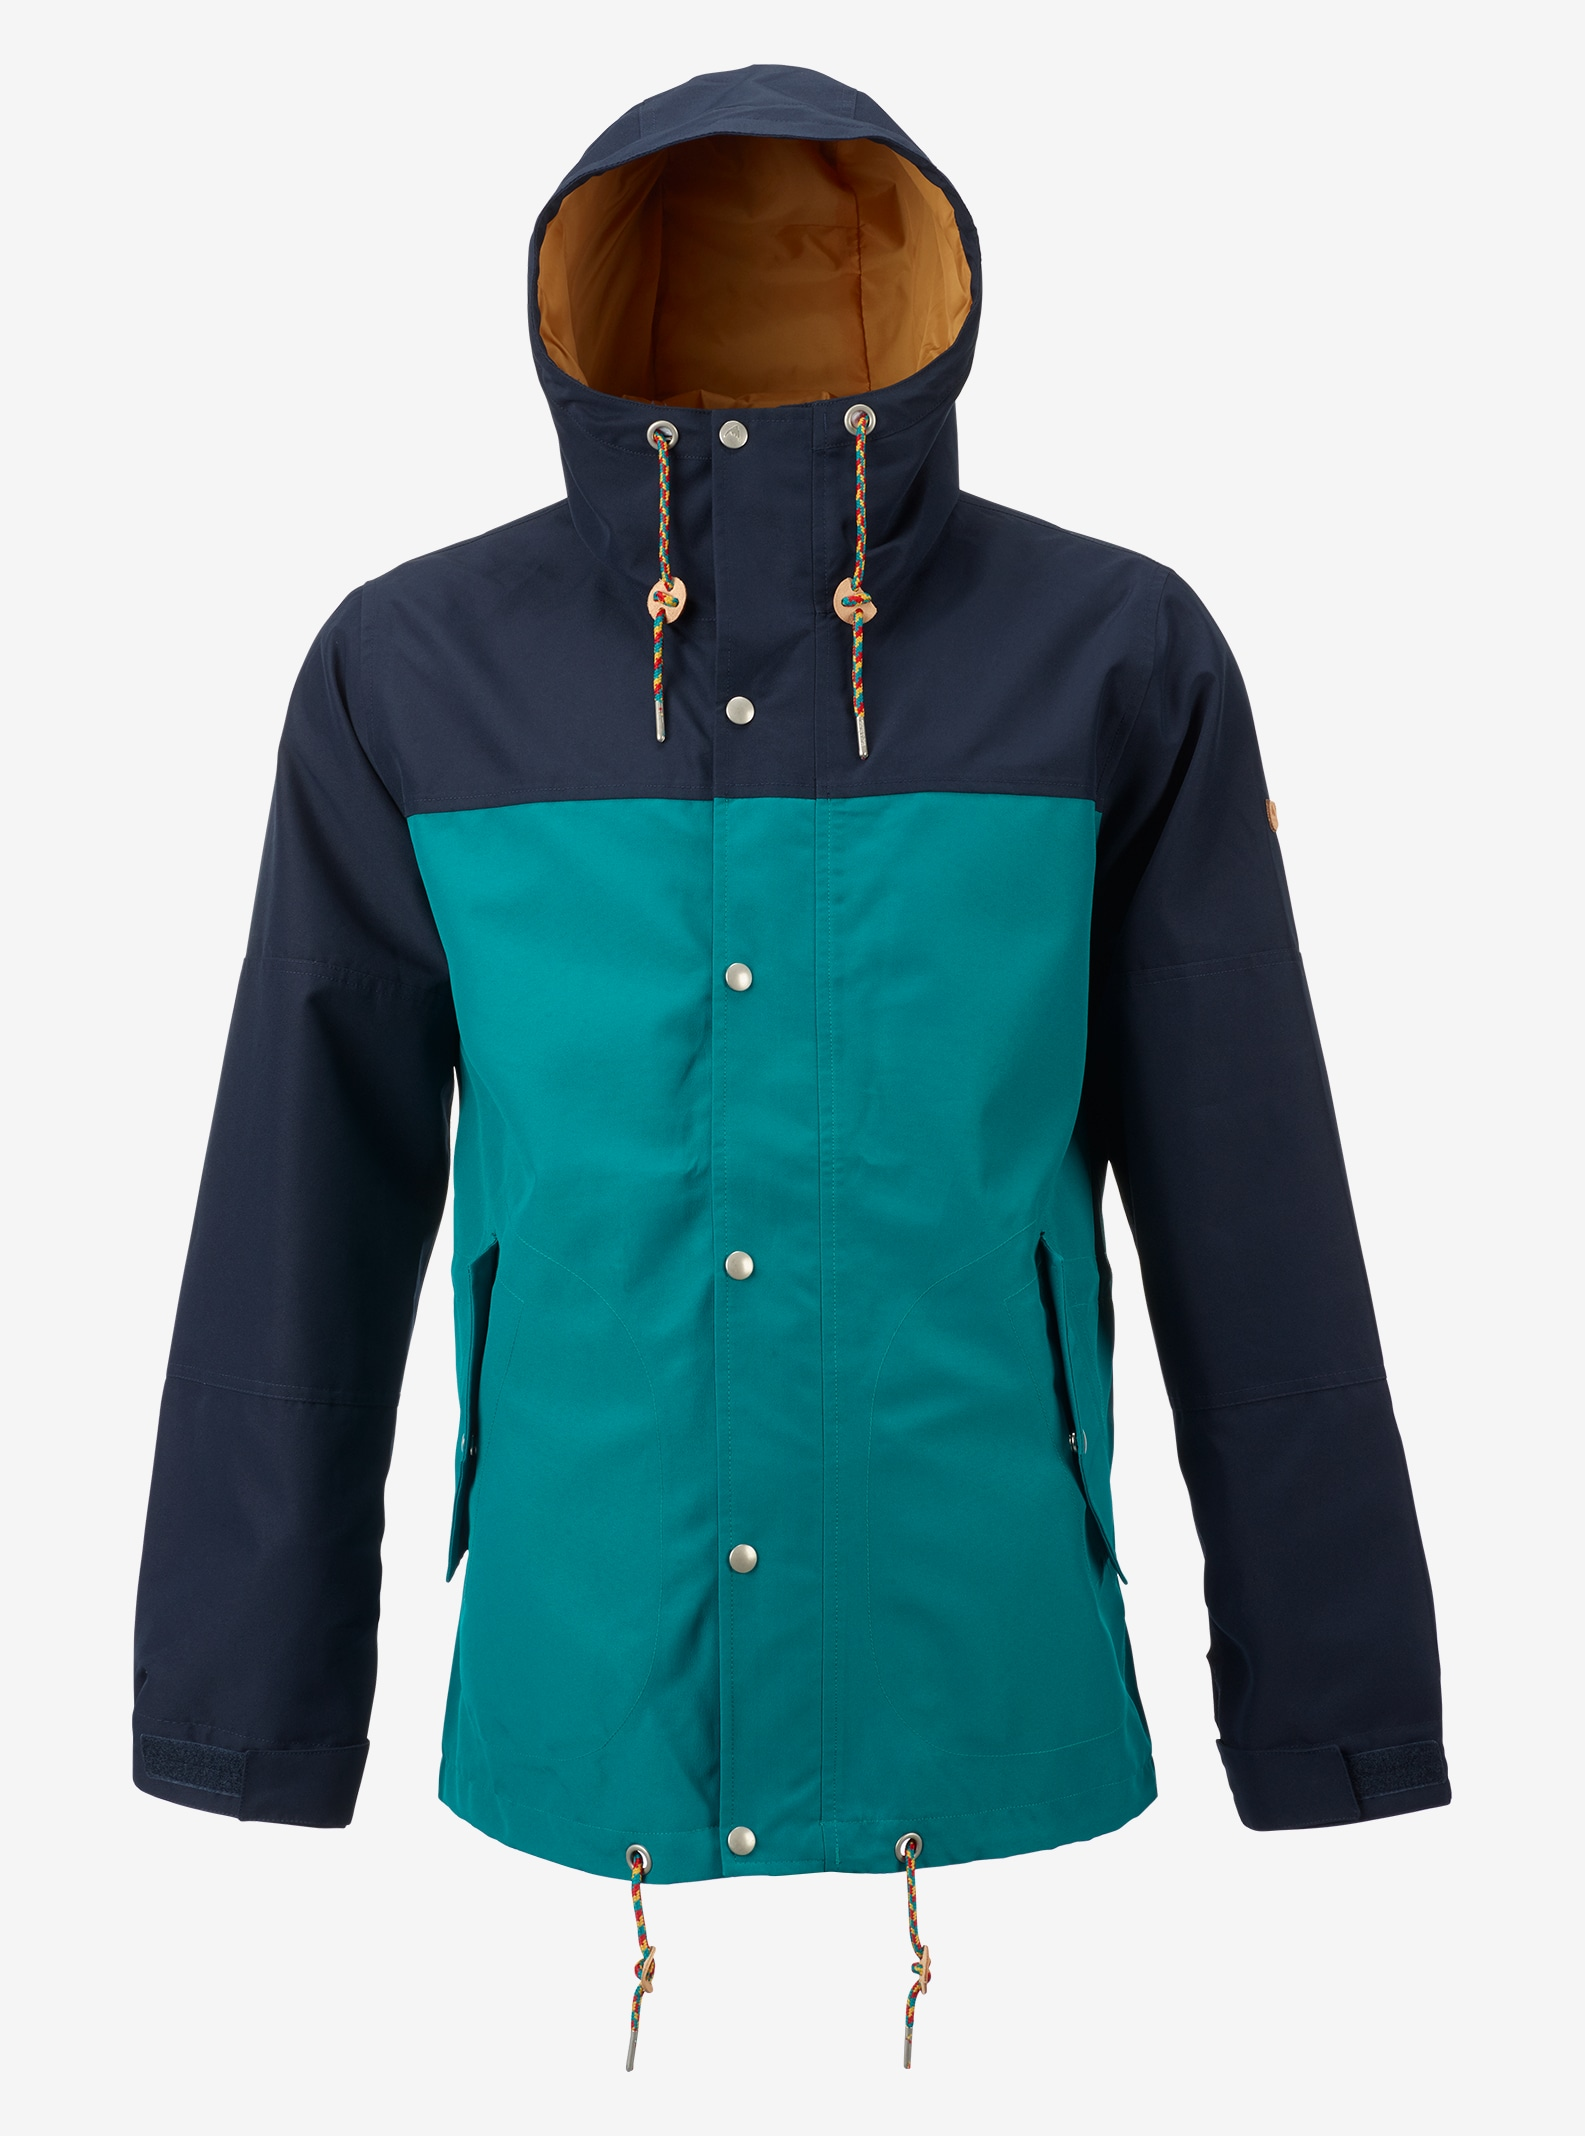 Burton Notch Rain Jacket shown in Eclipse / Fanfare